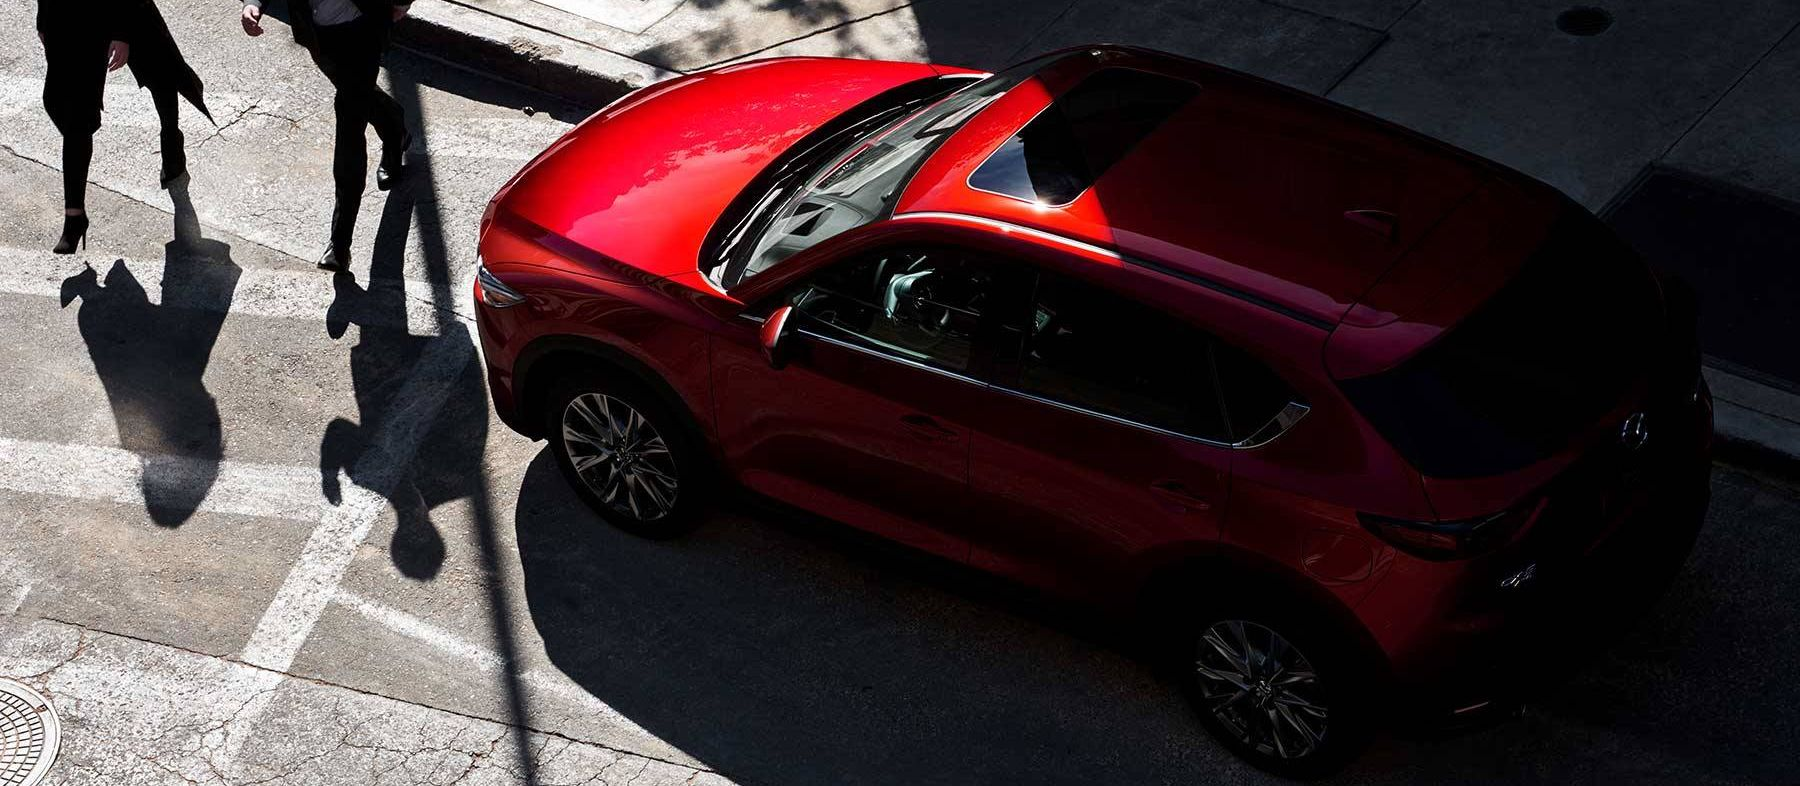 2019 Mazda CX-5 for Sale near Washington, DC